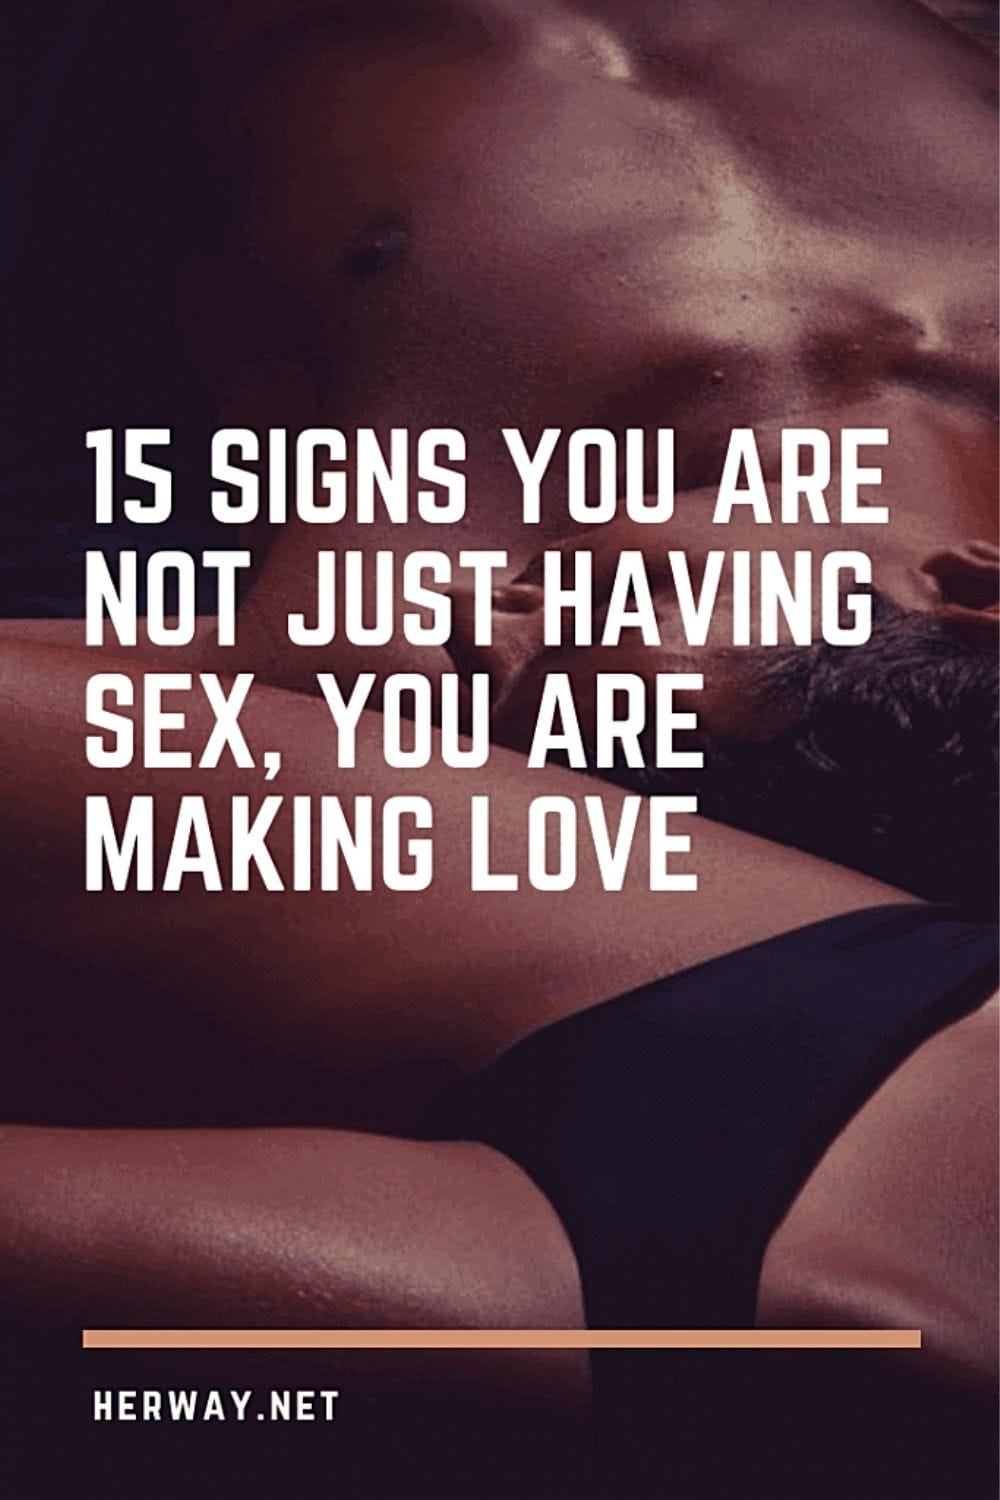 15 Signs You Are Not Just Having Sex, You Are Making Love